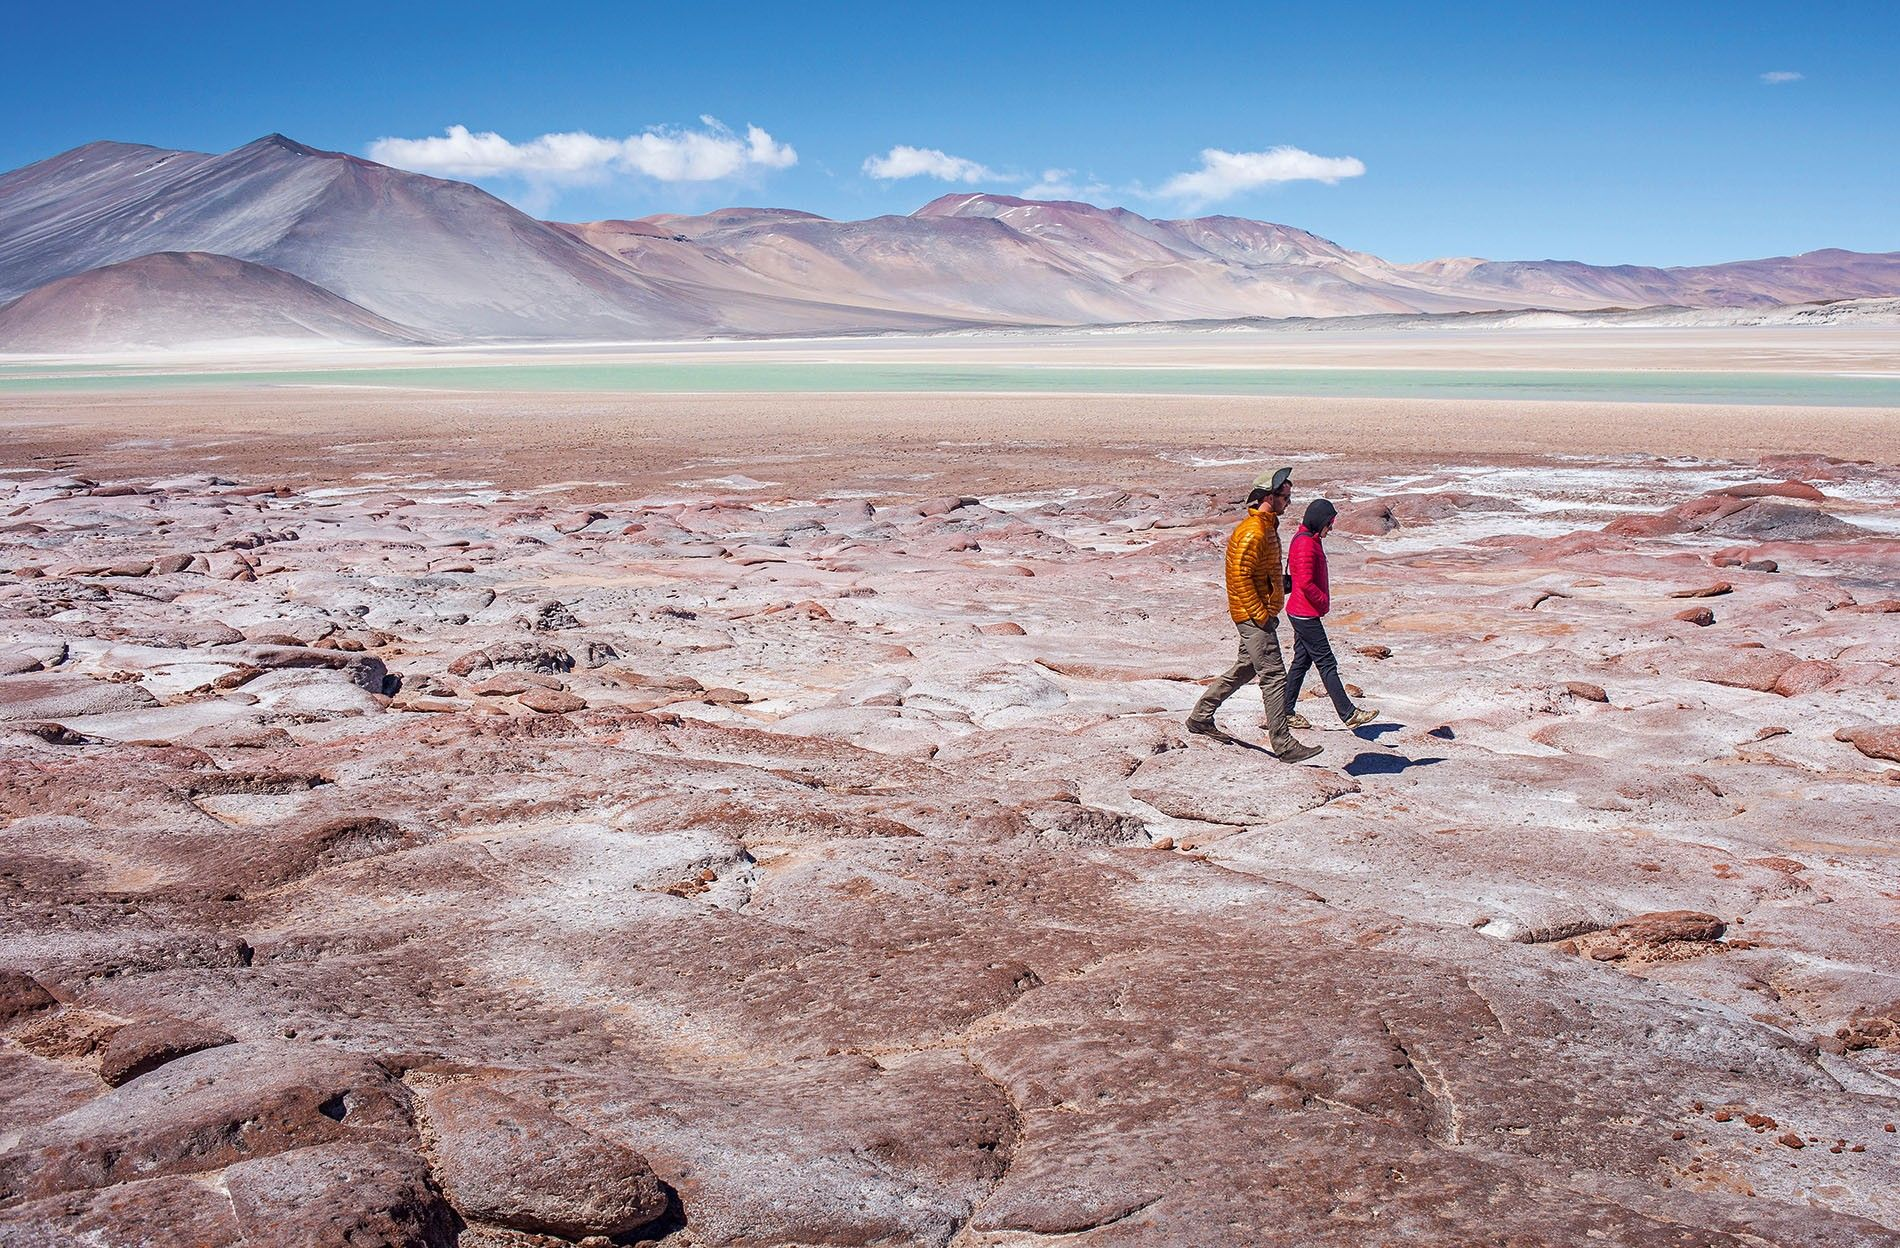 Experiencing another kind of life in the Atacama Desert